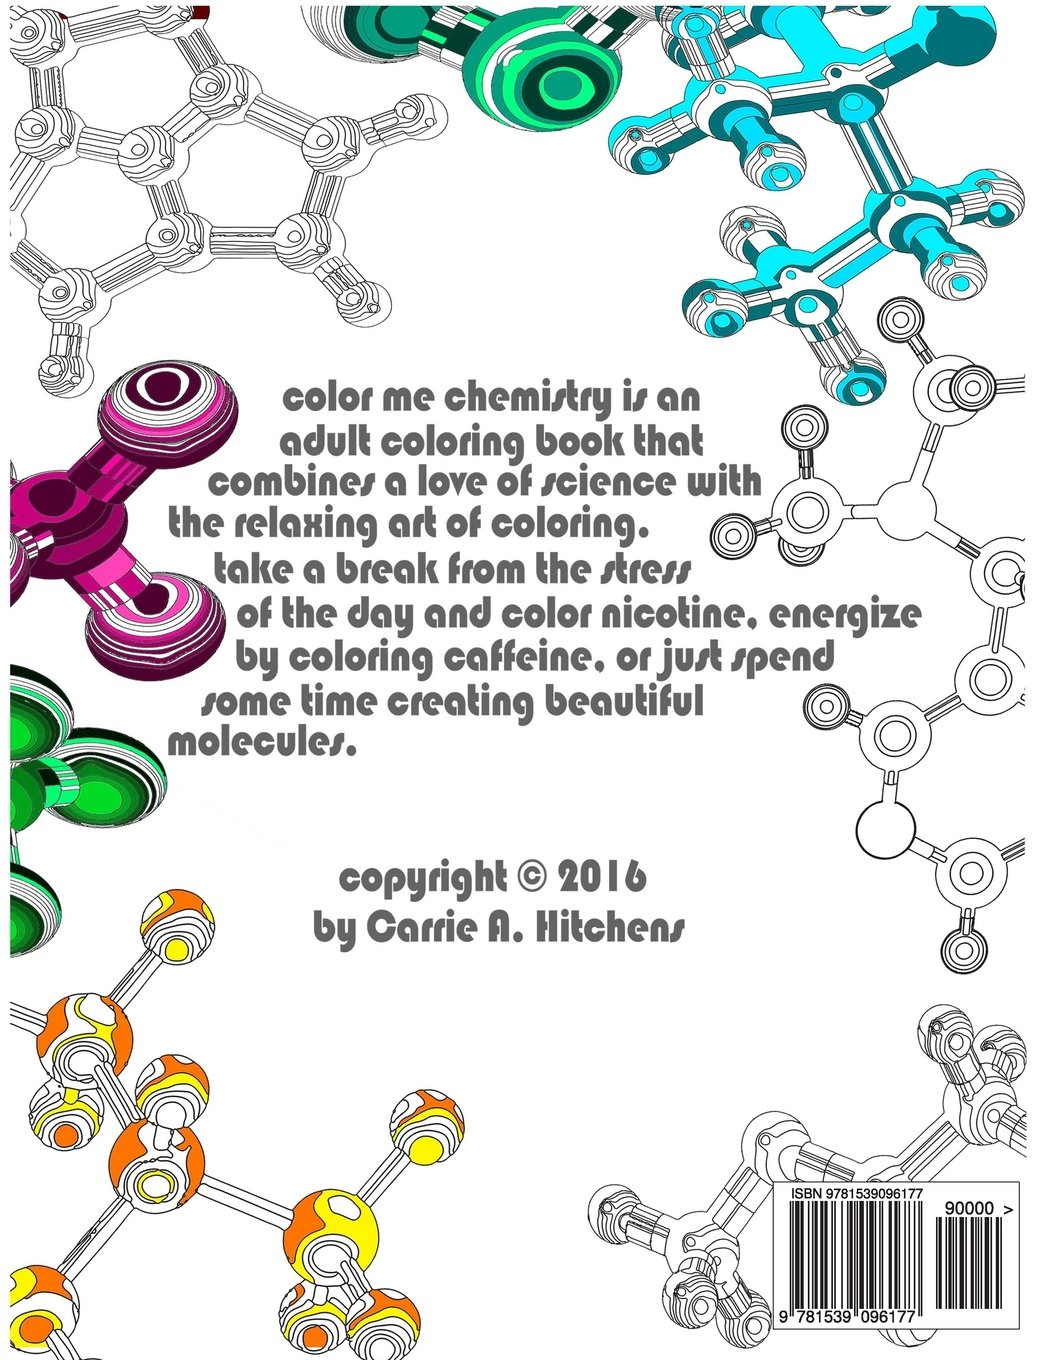 New colour me beautiful book 2016 - Amazon Com Color Me Chemistry A Molecular Coloring Book For Adults 80 Pages Of Molecules To Color 9781539096177 Carrie A Hitchens Books